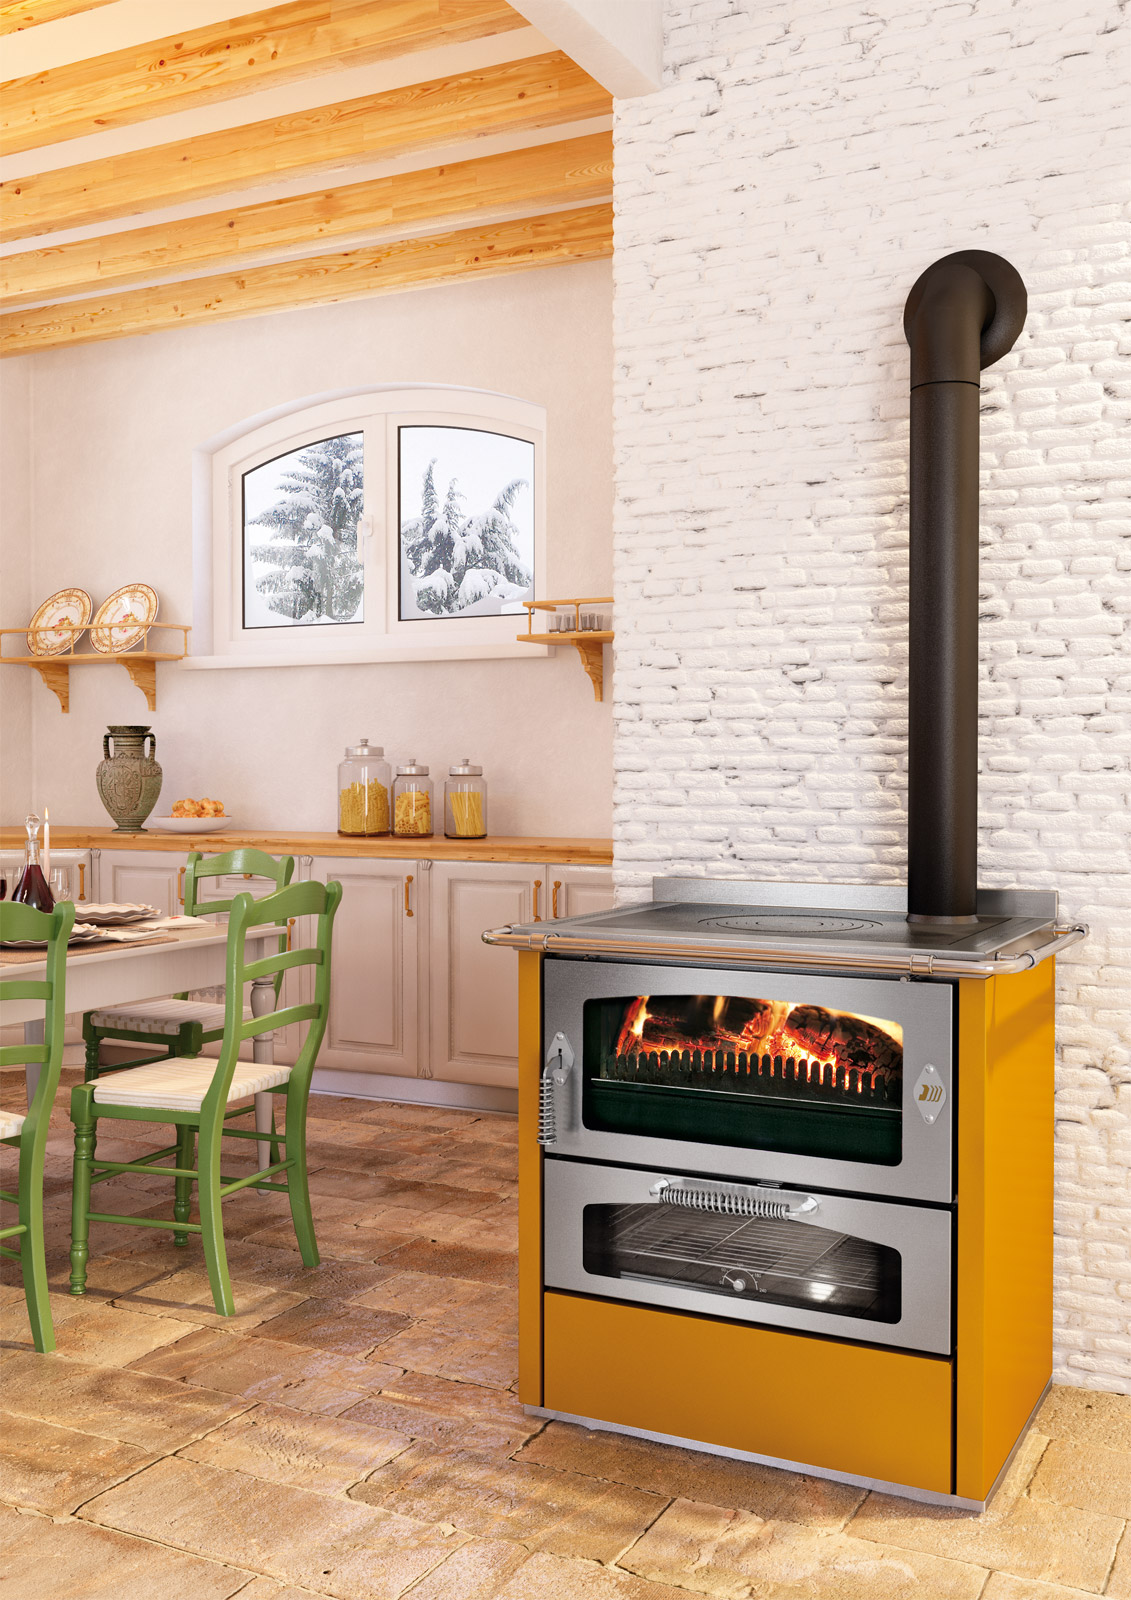 Mazzolani for Stufe jotul usate